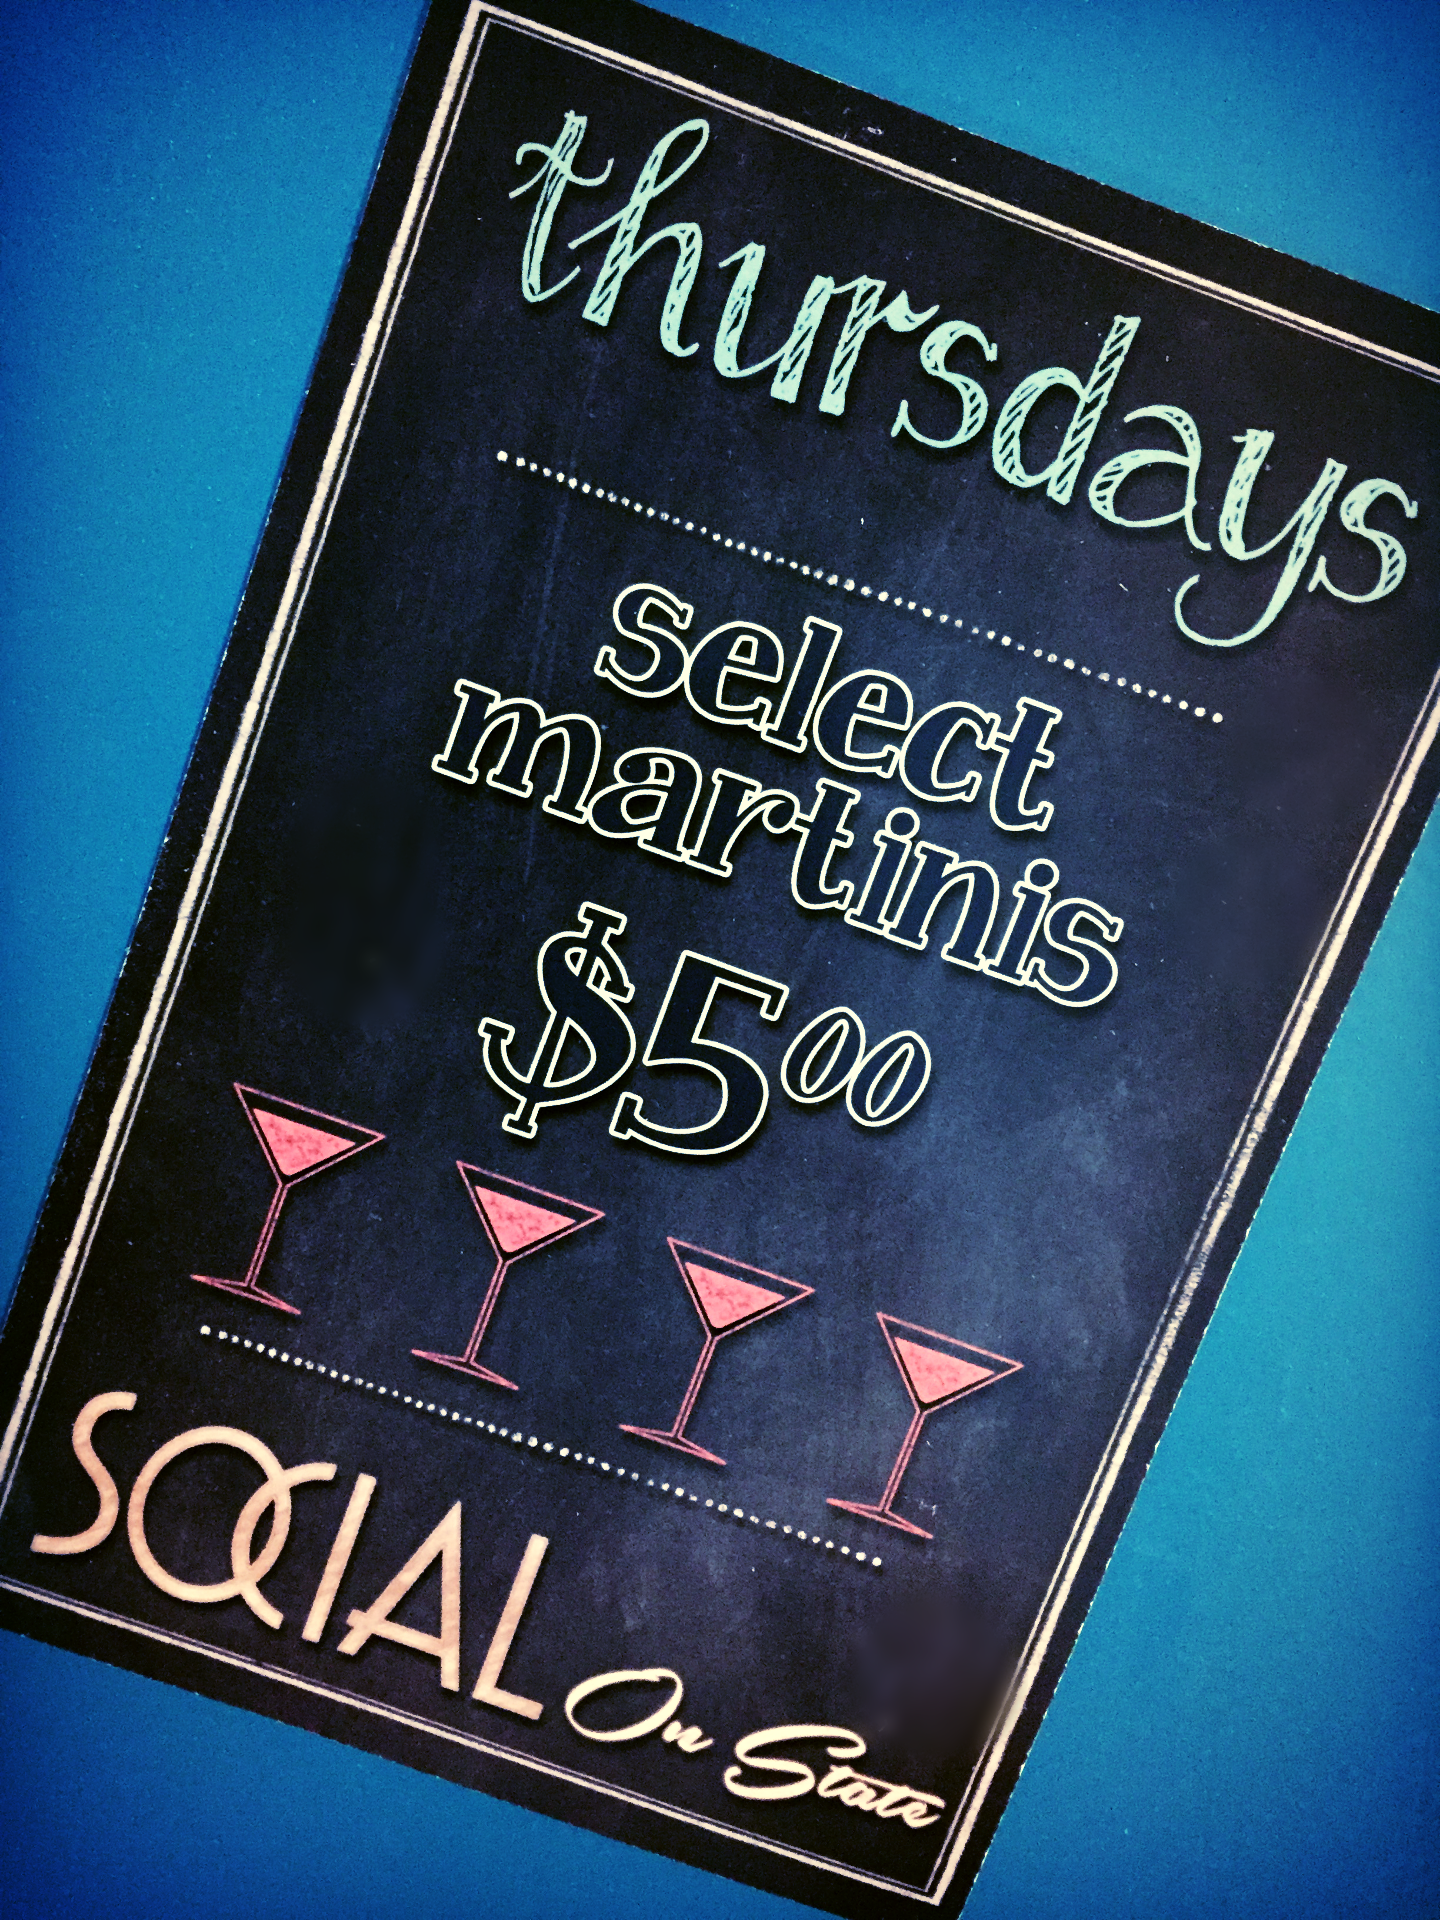 Thursday Social Hour